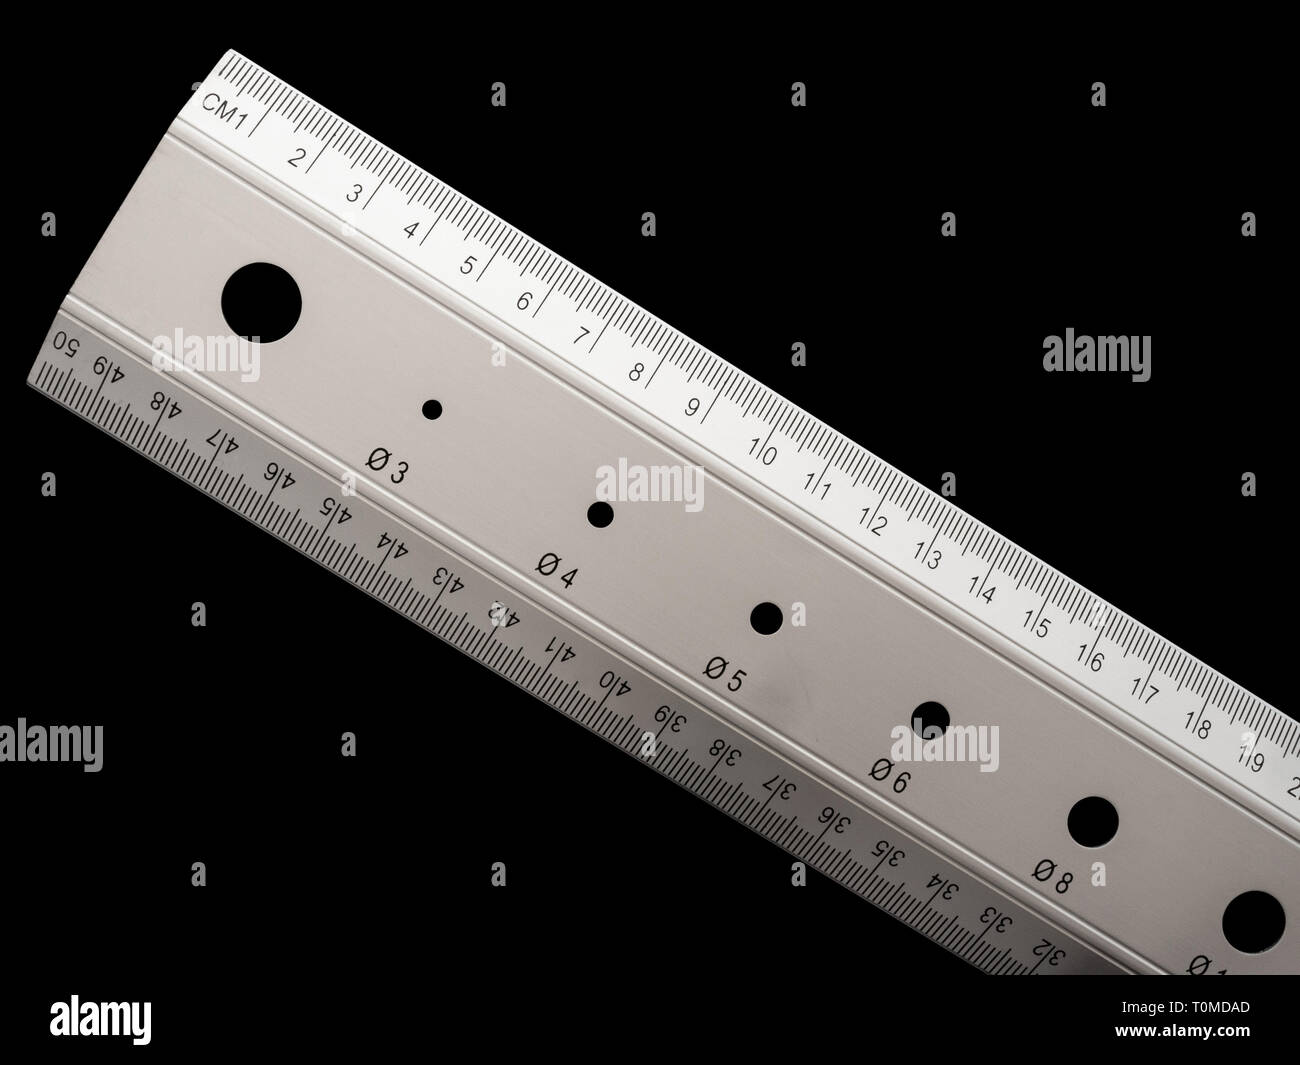 Cut-out of a linear ruler. Black background. Technical concepts. - Stock Image